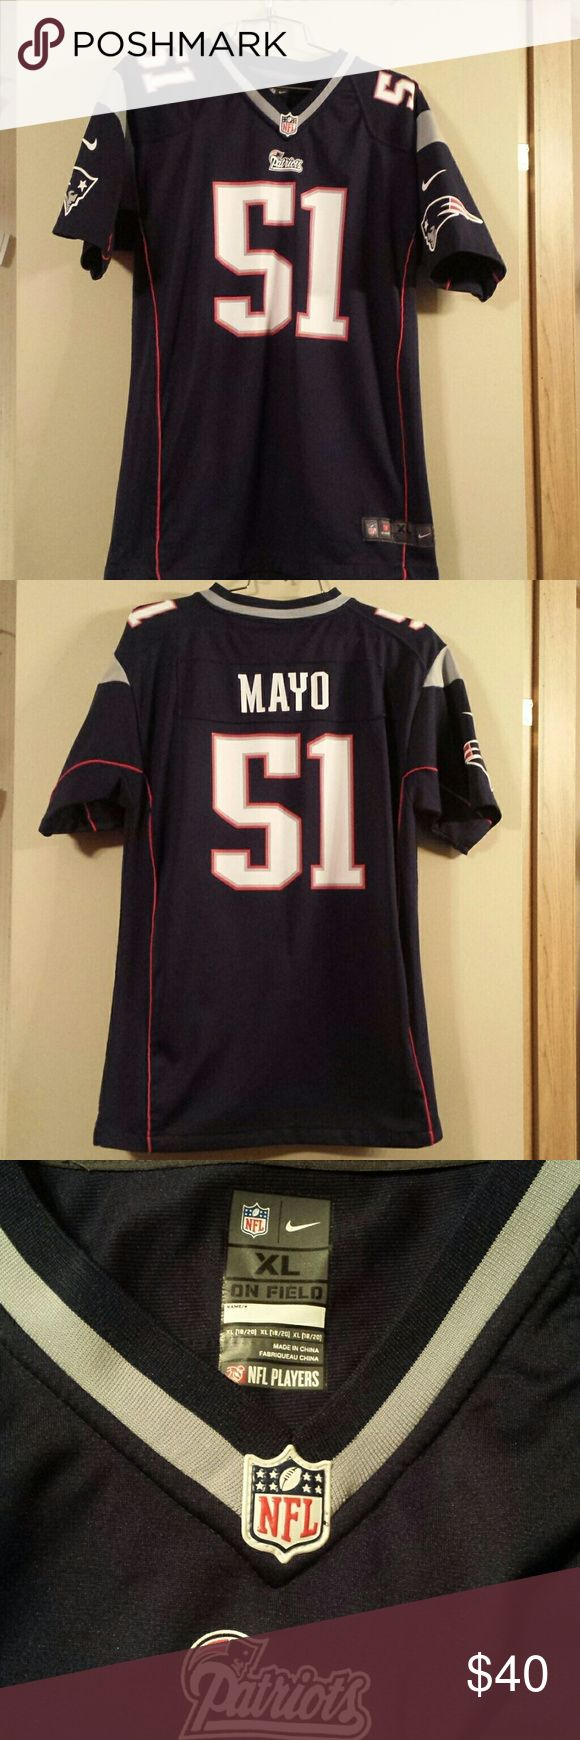 Nike New England Patriots Mayo jersey Navy with red piping detail.   Sides have strip of net material that's navy but can slightly be seen through. Excellent condition.   No stains or tears. Nike Shirts & Tops Tees - Short Sleeve